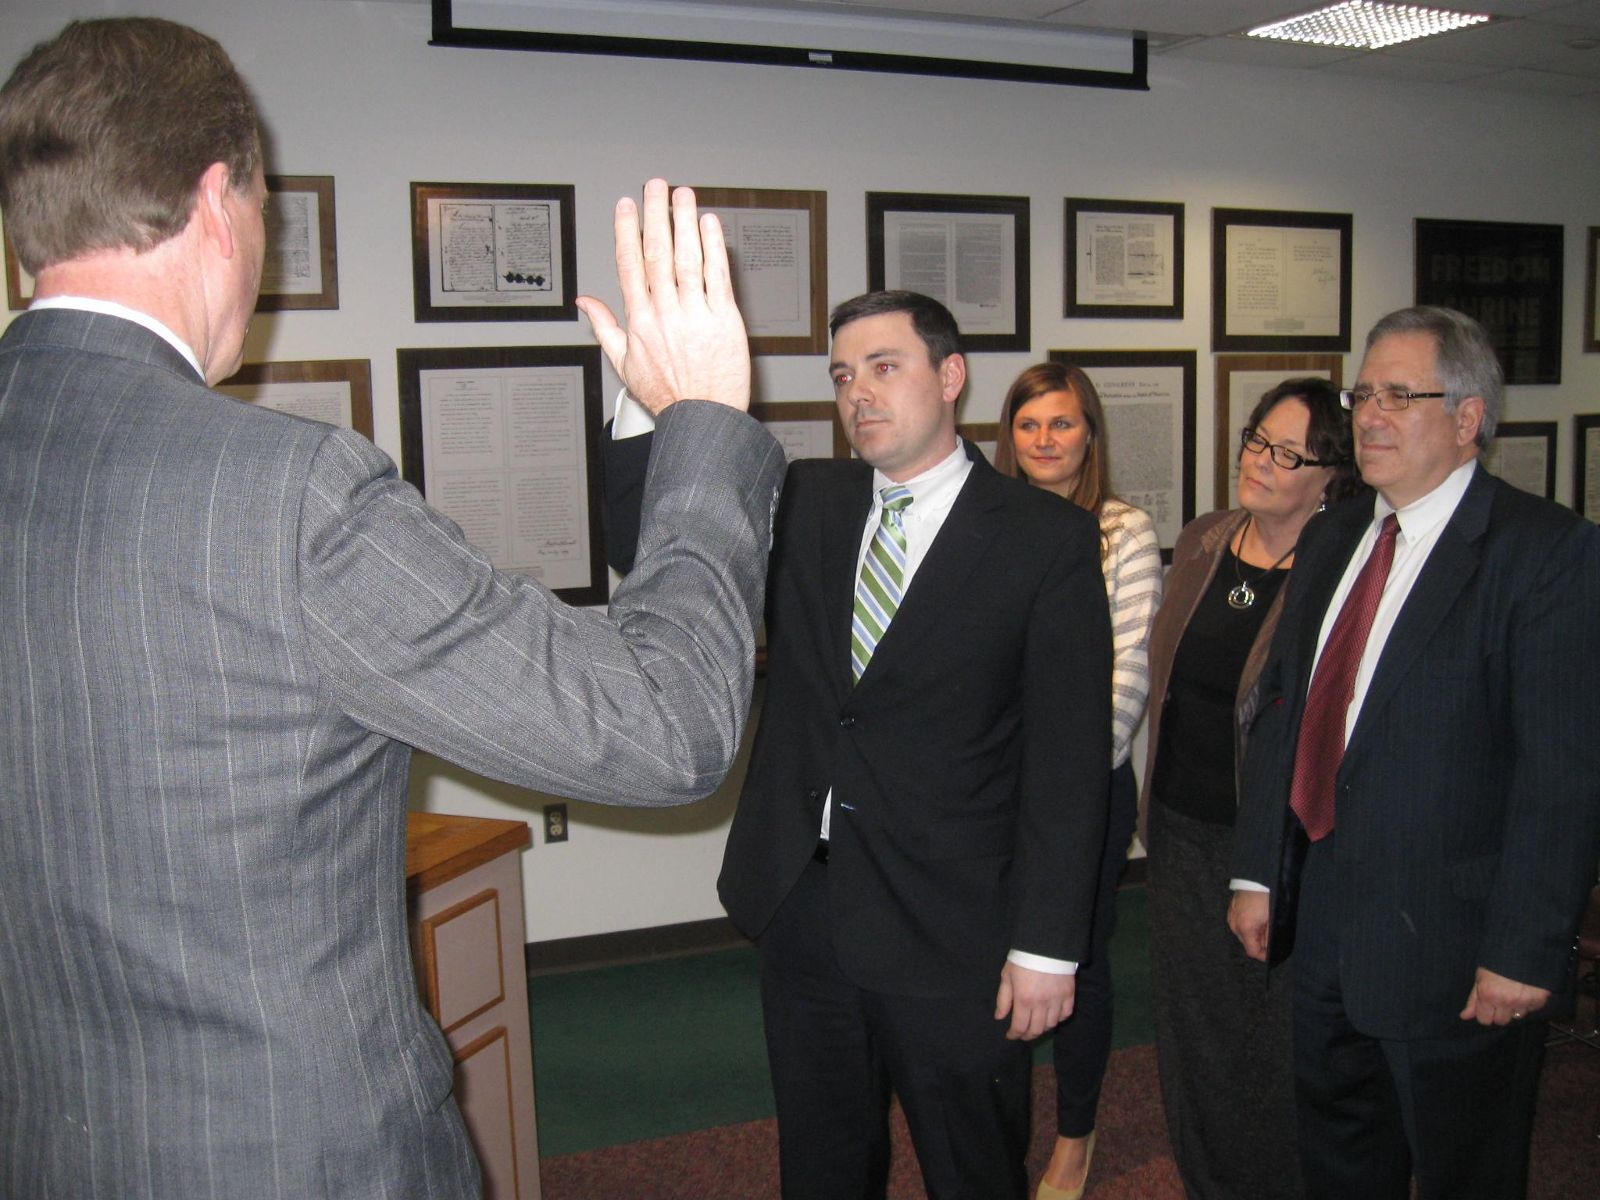 Image of Triffon Callos swearing in ceremony